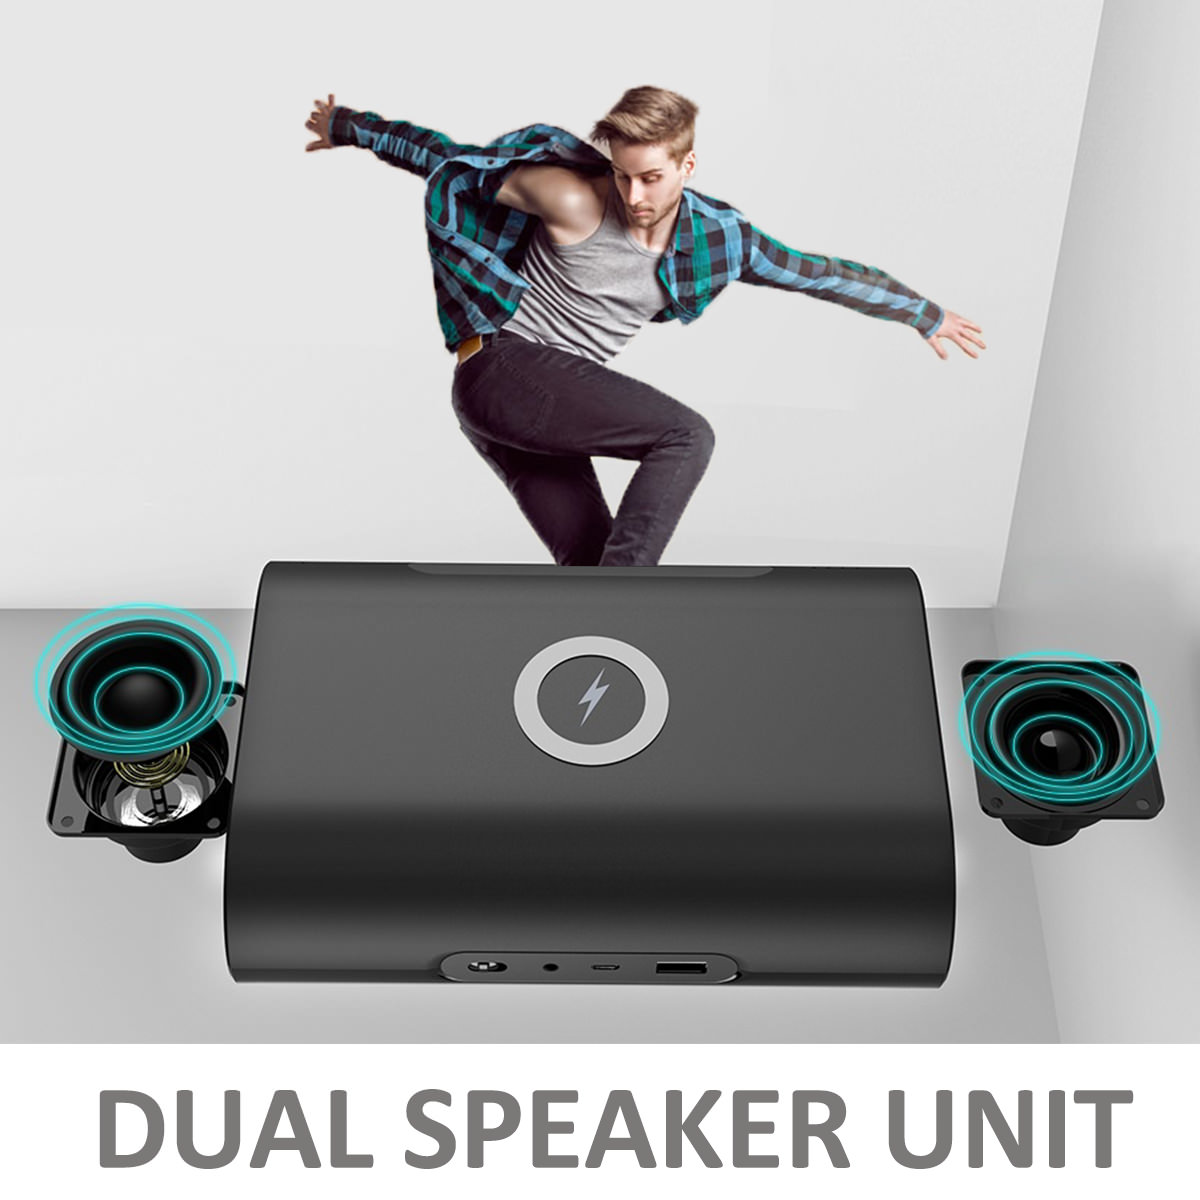 2019 3 in 1 portable wireless charger/bluetooth speaker/power bank